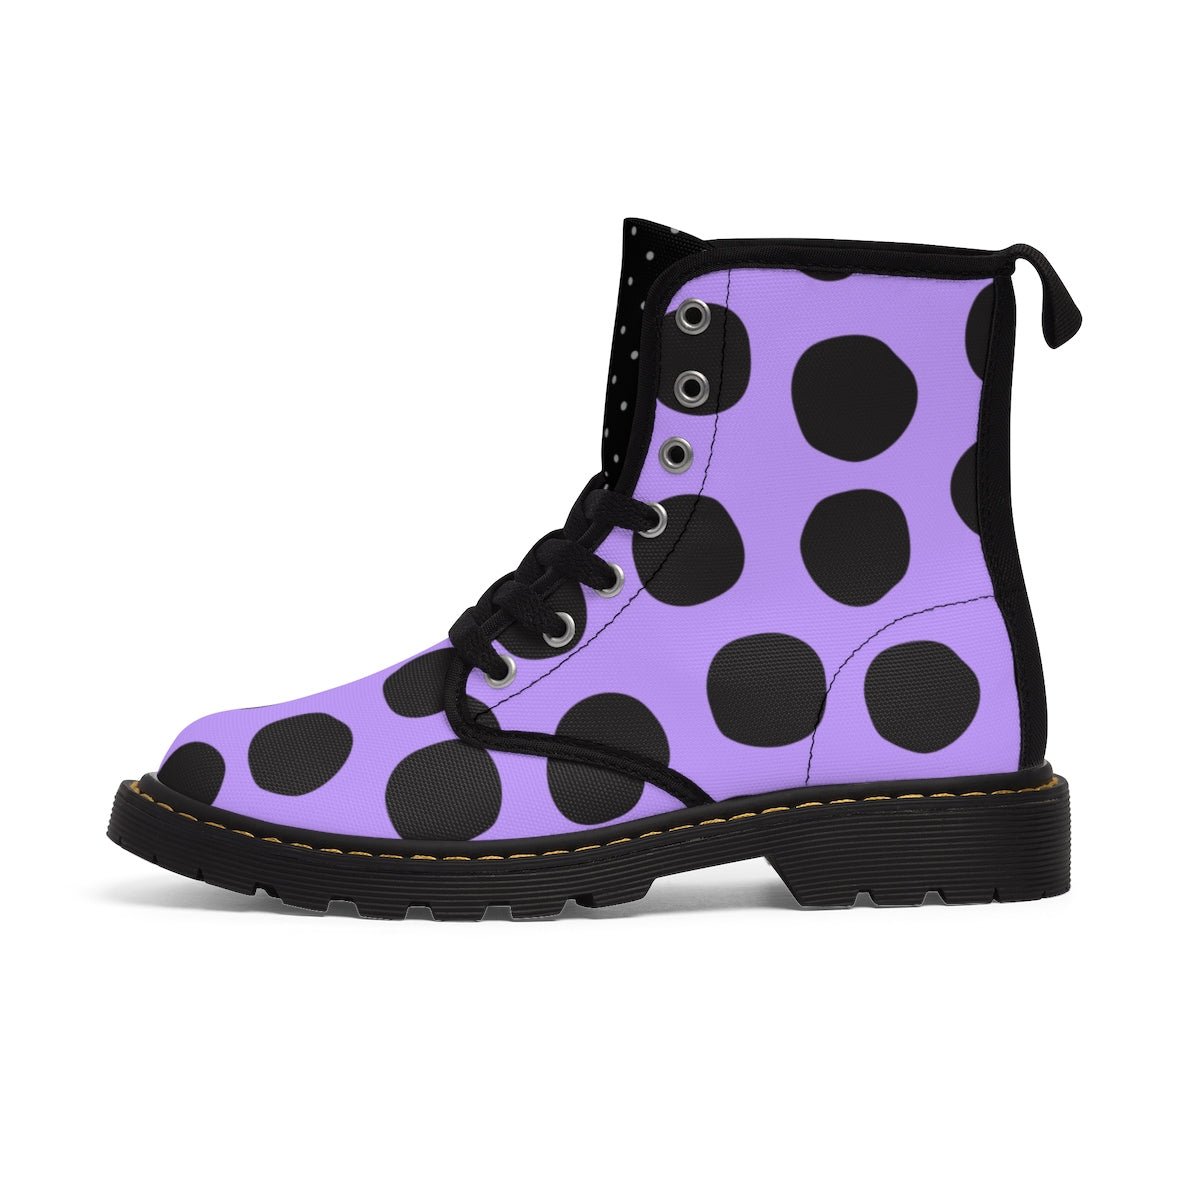 Ultraviolet Purple and Black Polka Dot Kids' Martin Boots Shoes - Polka Dotted All The Things Boutique